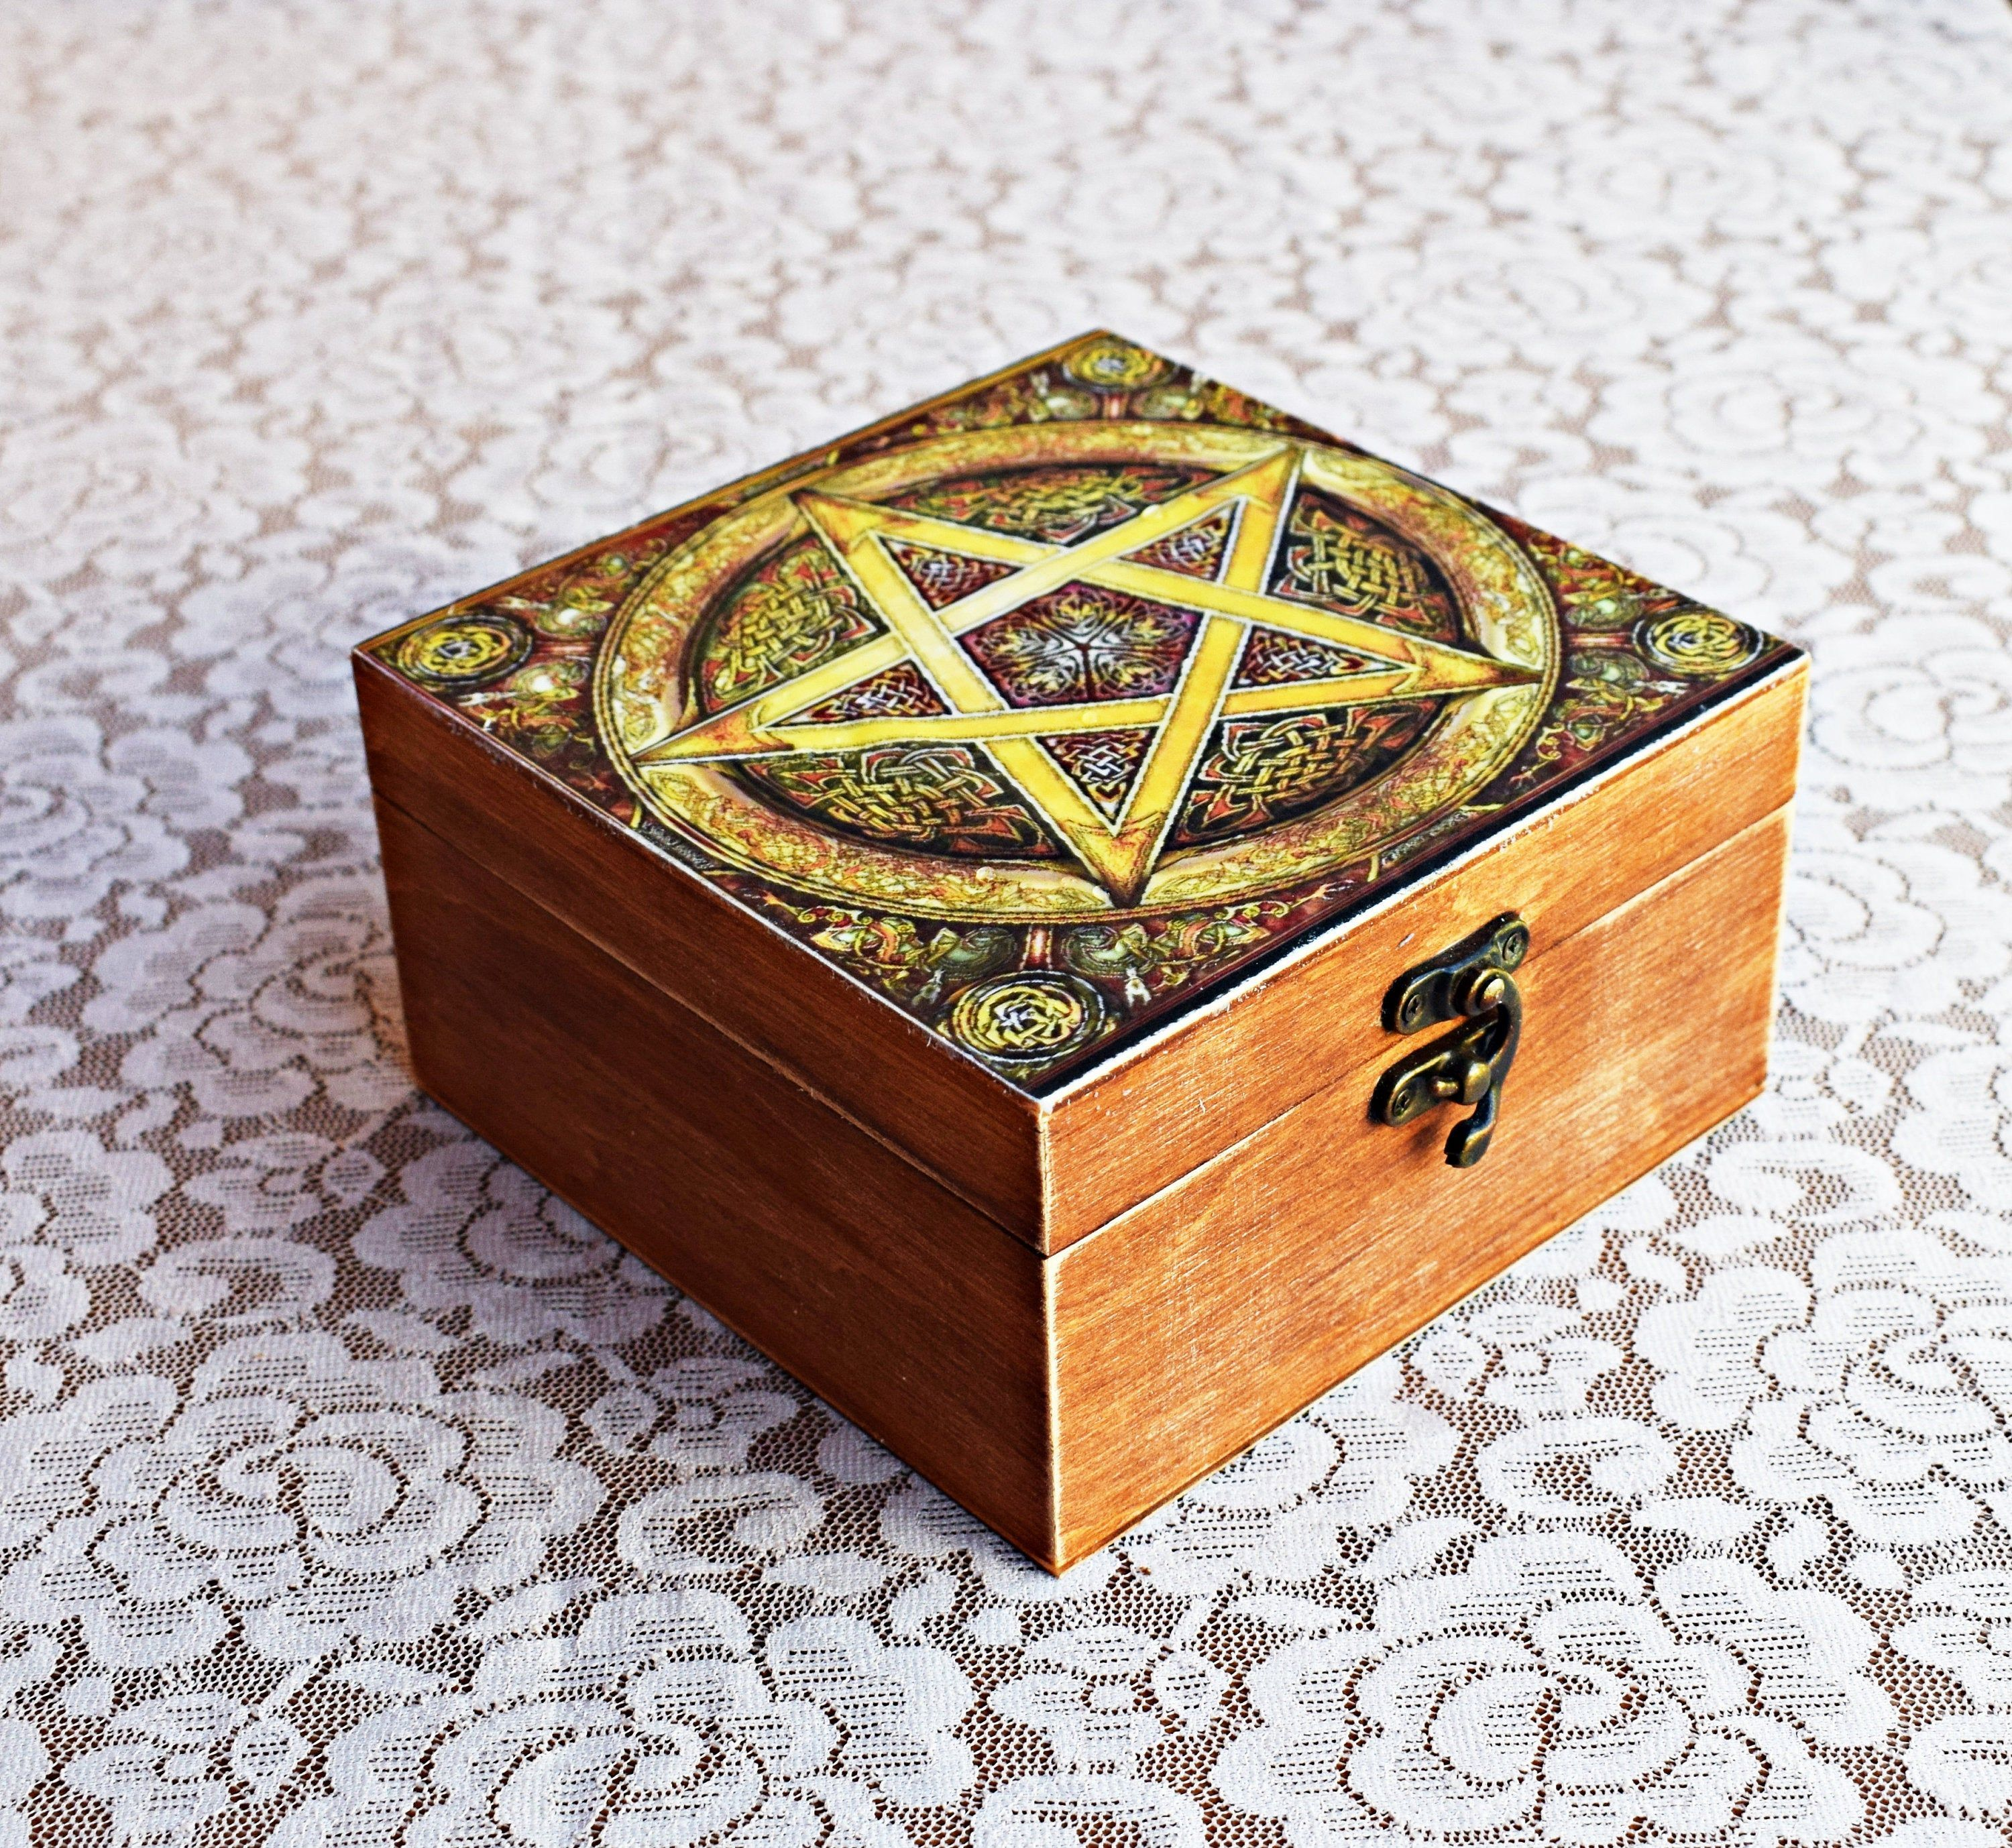 Pentagram Altar Witch Box, Pentagram Carved Wooden jewelry Box, Personalized memory Pentacle Wiccan decor, custom pentagram witch gift box #wiccandecor Pentagram Altar Witch Box, Pentagram Carved Wooden jewelry Box, Personalized memory Pentacle Wiccan decor, custom pentagram witch gift box Welcome to our store. In this shop you will find unique wooden boxes made to your order, all boxes are handmade. Materials: High quality wood, environmentally friendly materials. Production time is 2-5 days. #wiccandecor